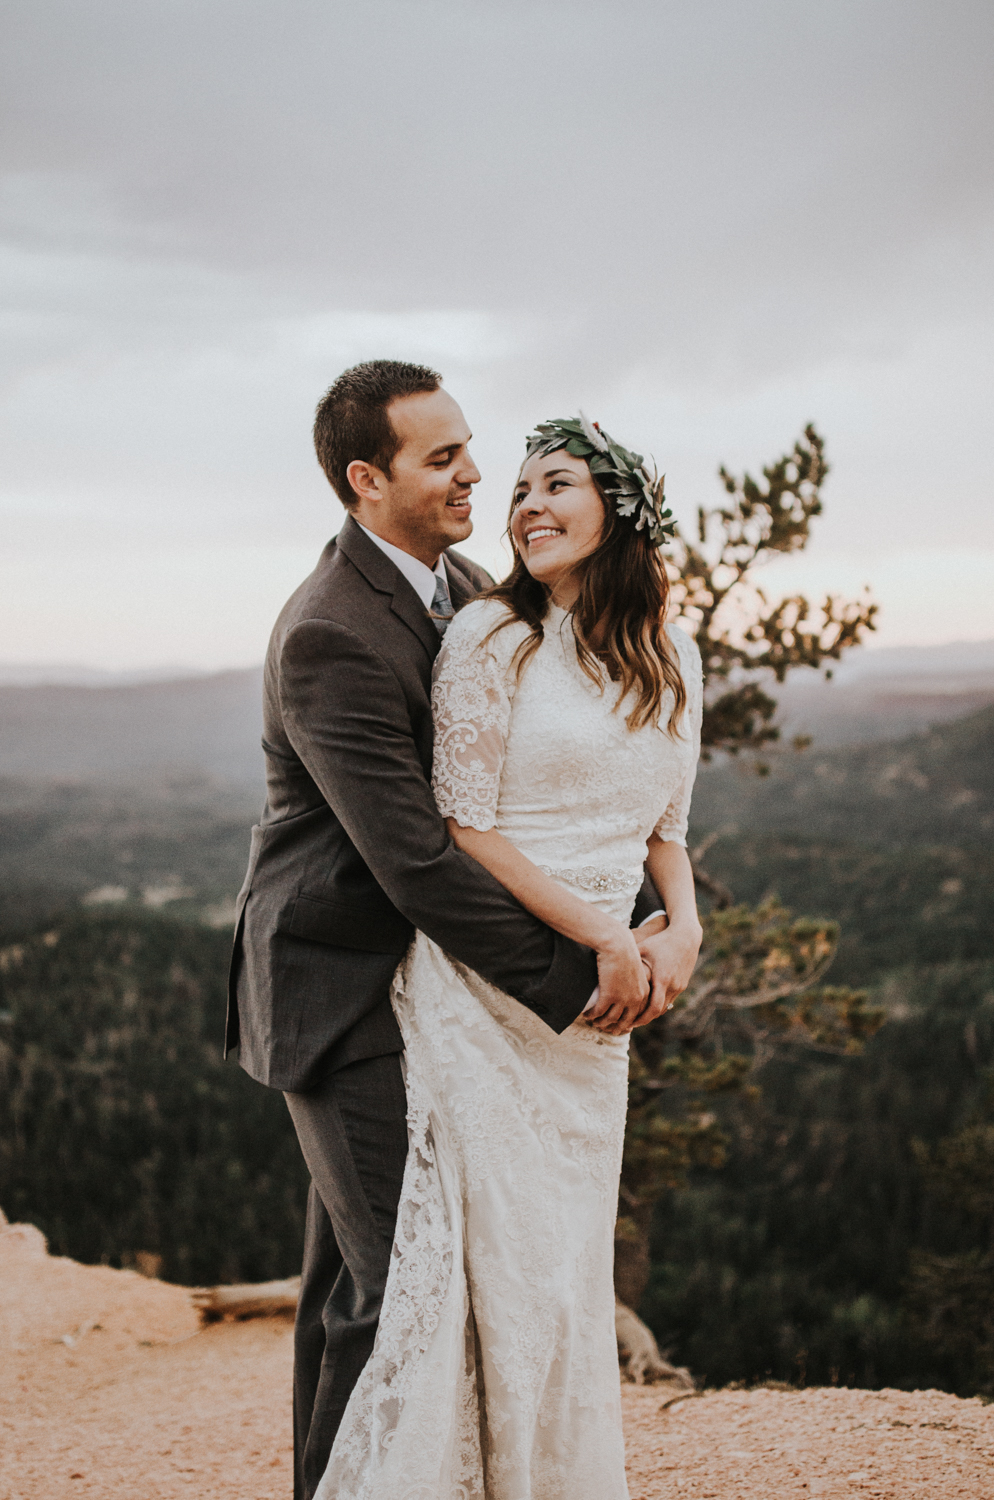 southern utah bryce canyon adventurous elopement with mountain view simply amor photography